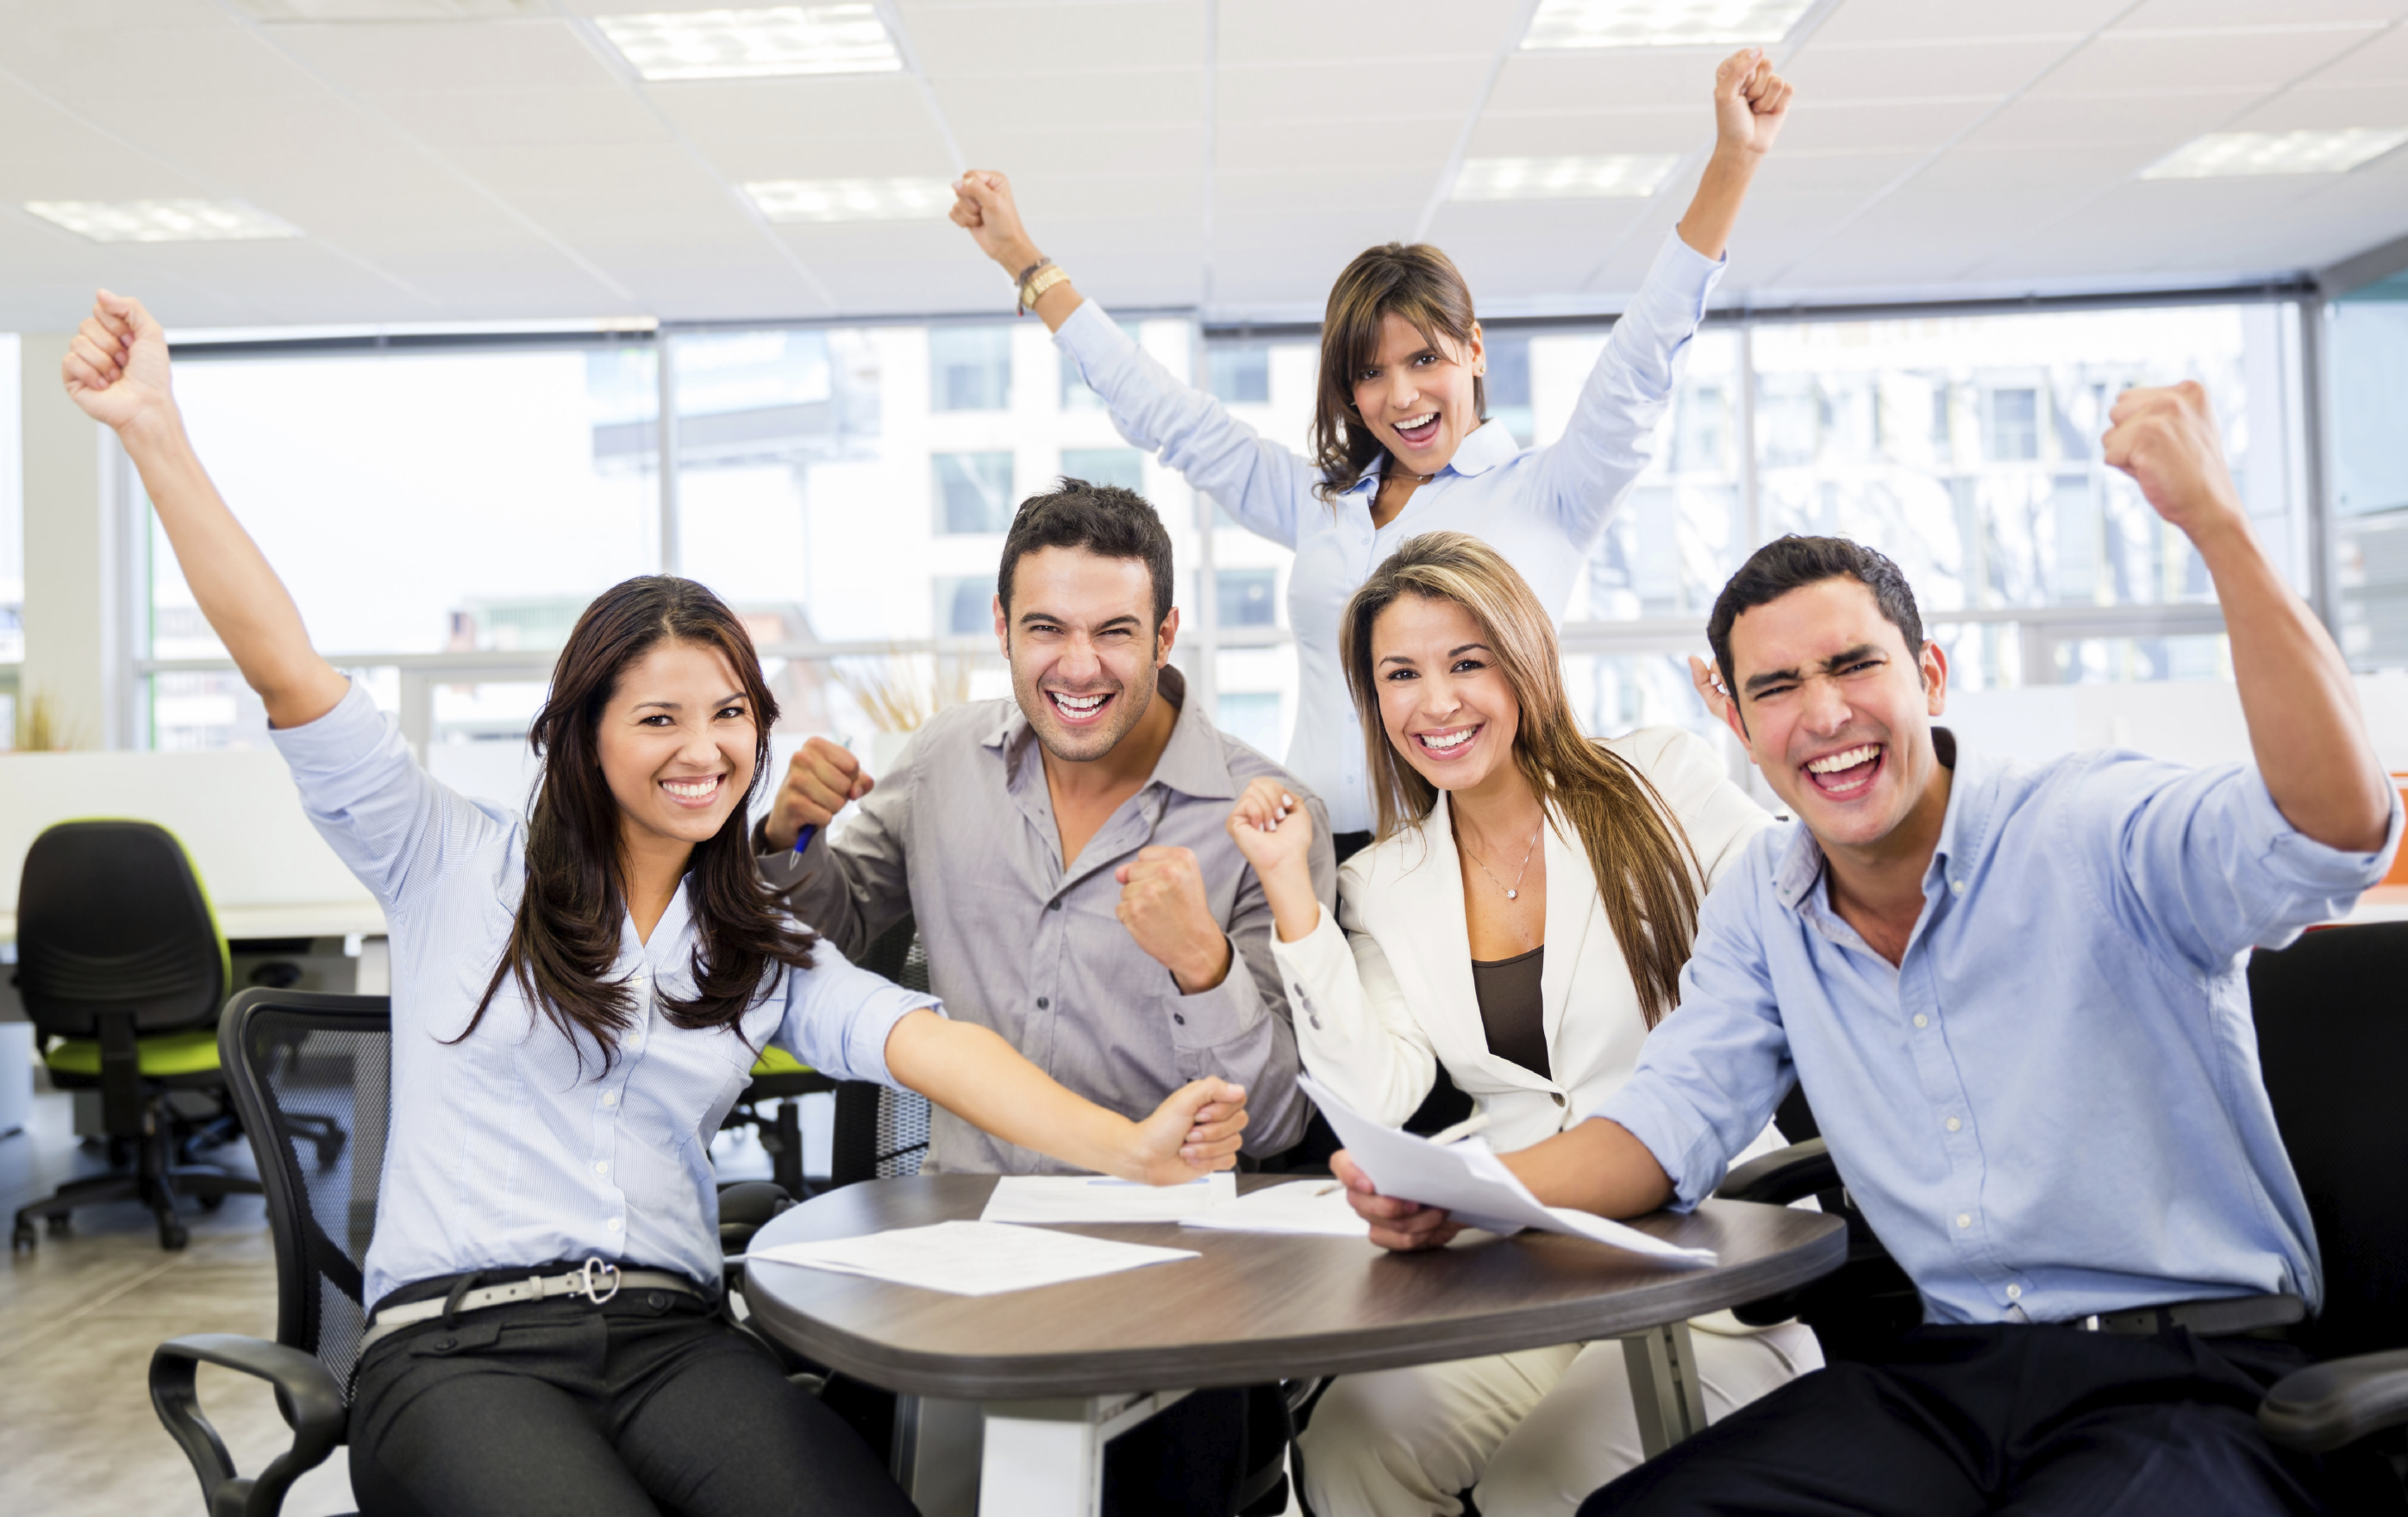 employees happy about peer-to-peer performance reviews